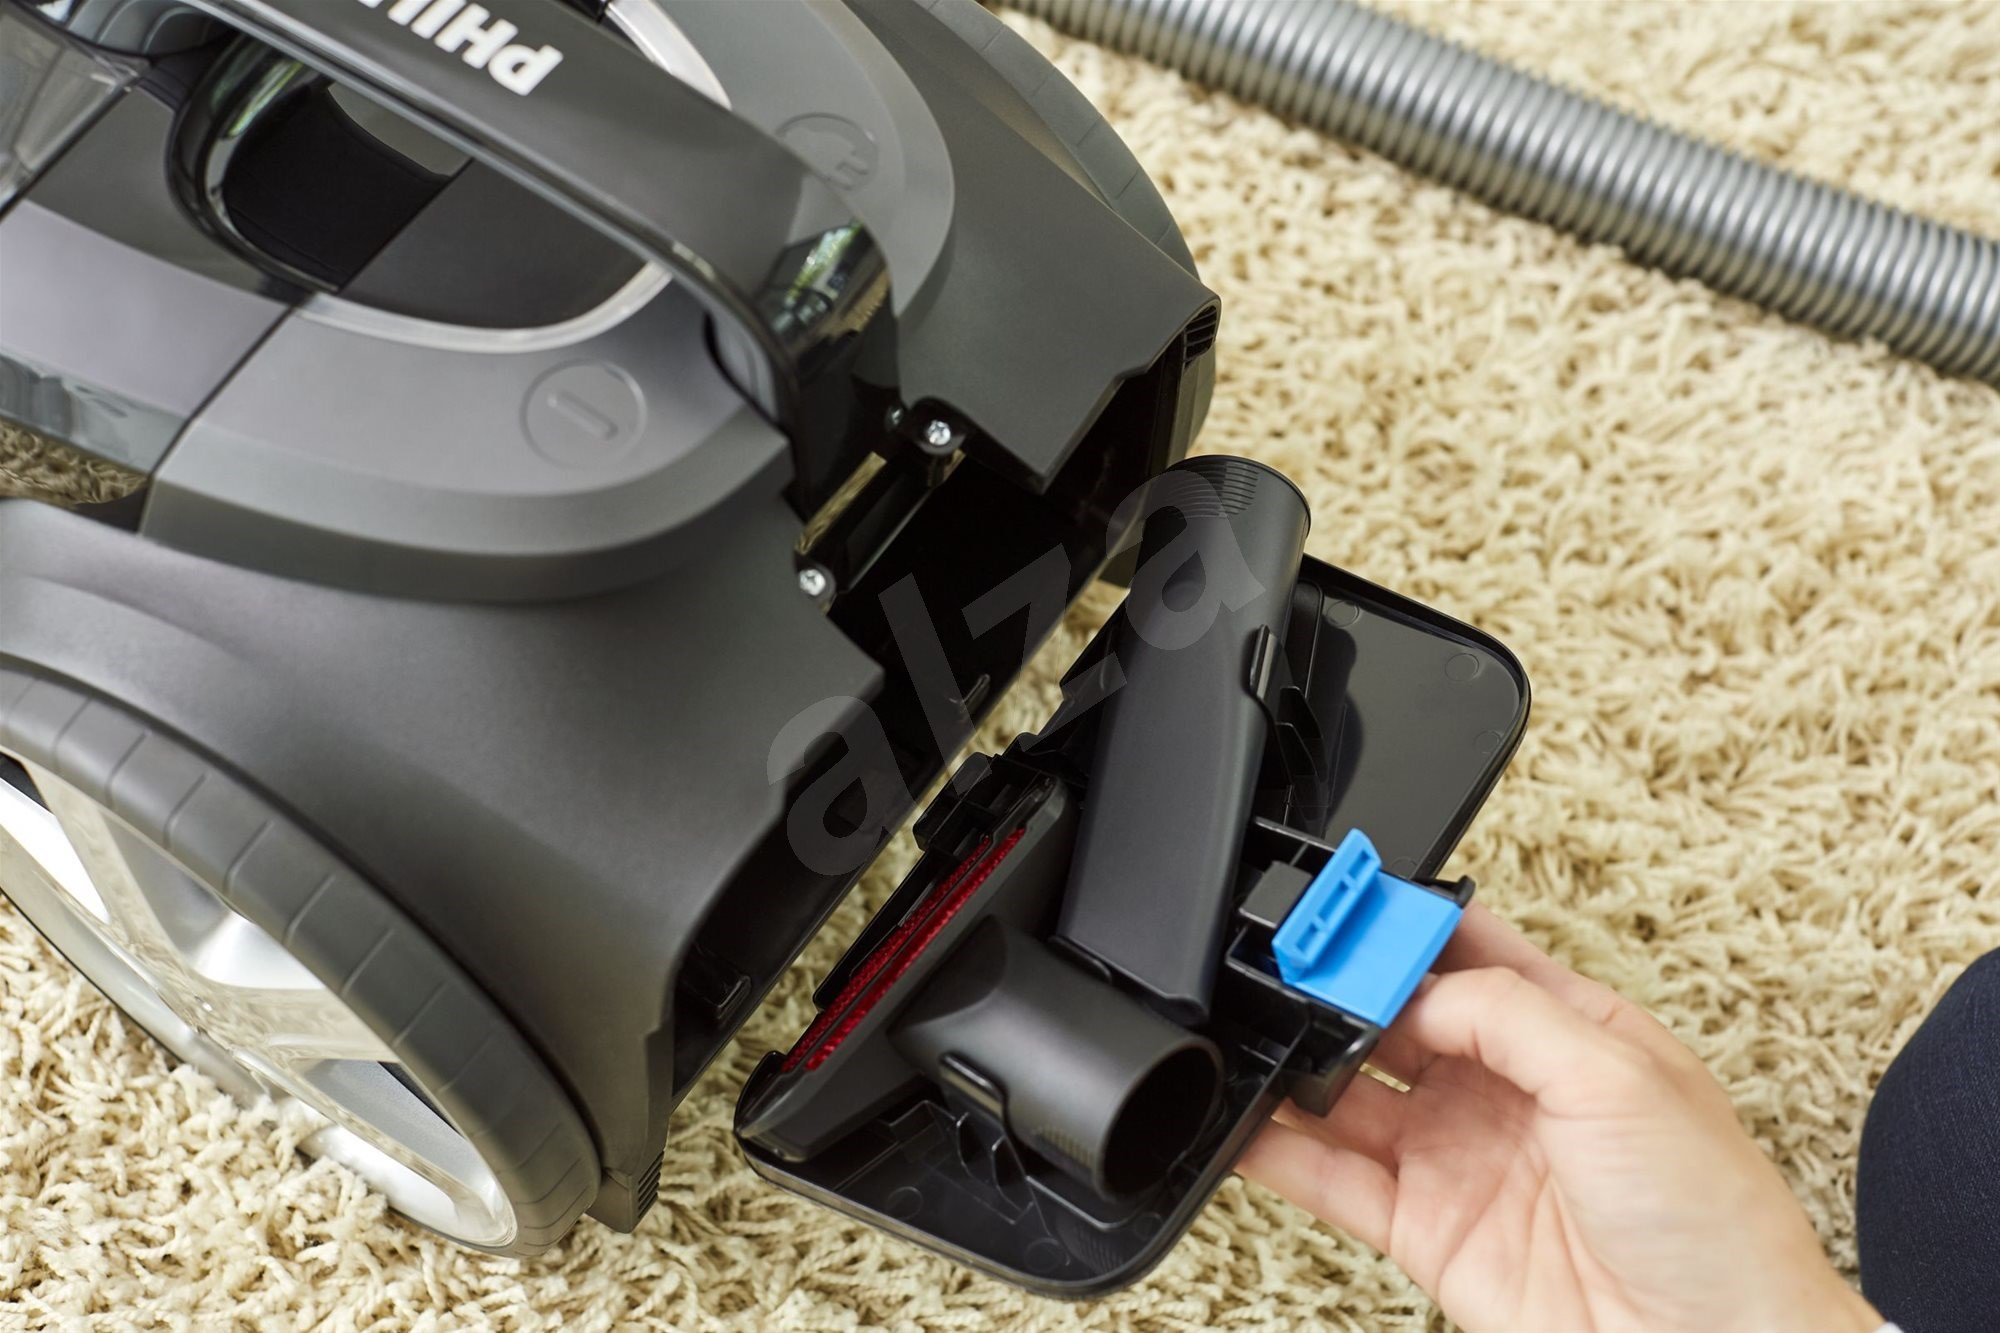 Cleaners dyson vacuum cleaner dyson dc23 motorhead review